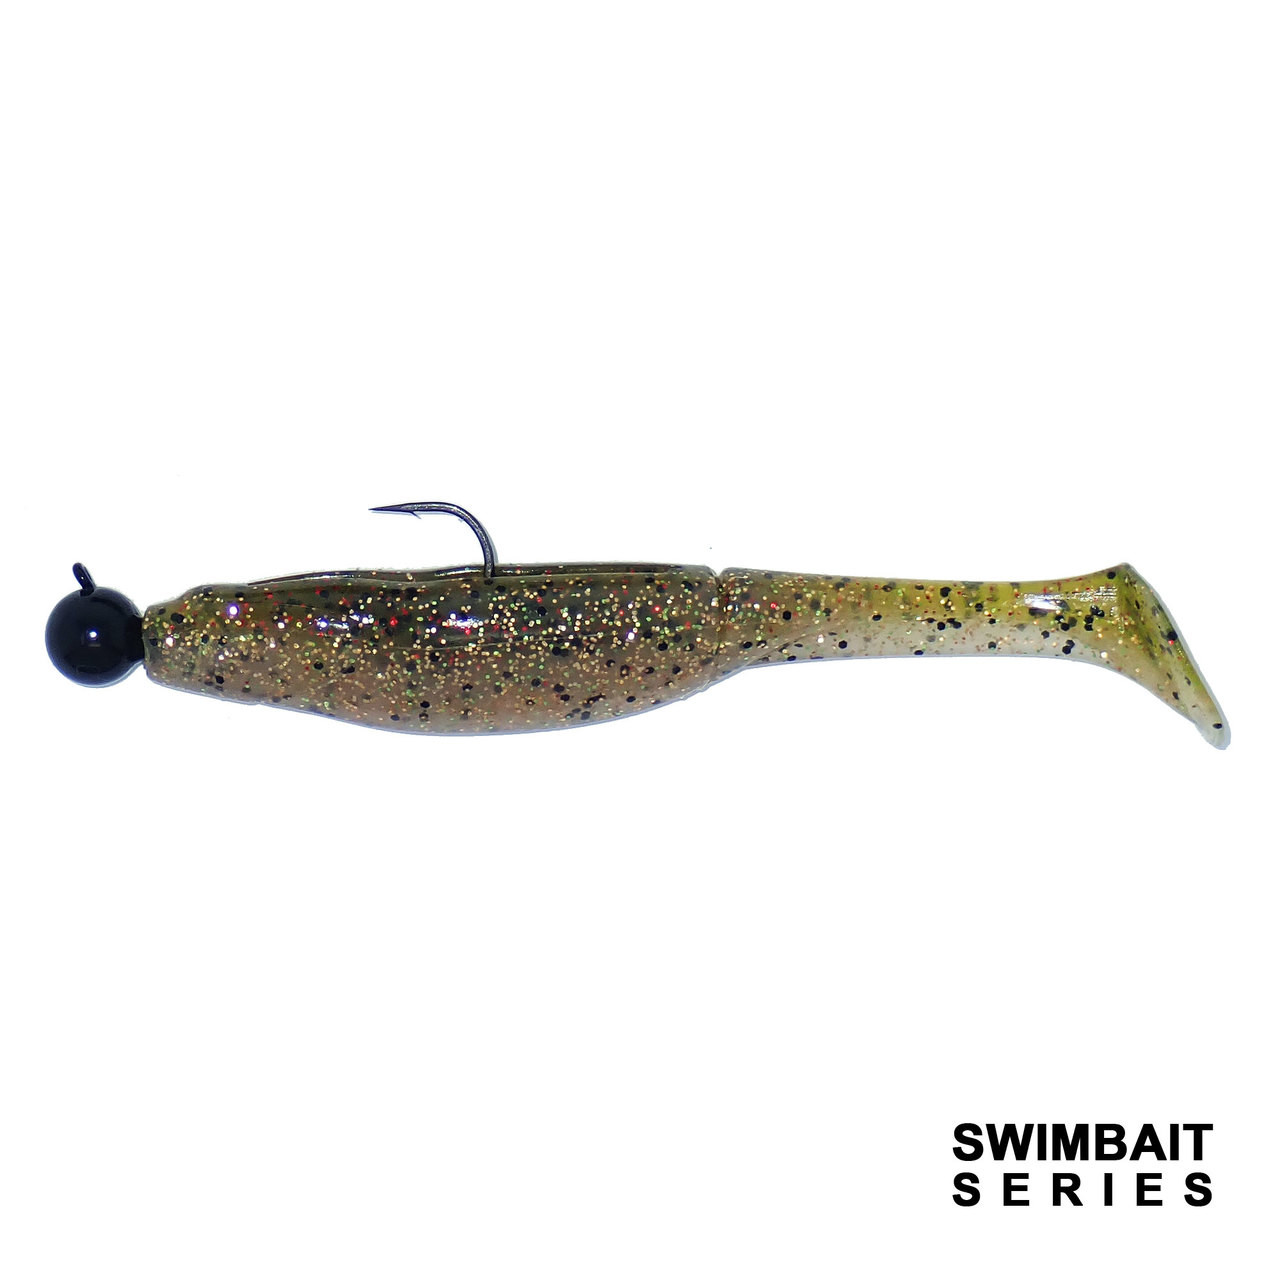 Swimbait - 6 inch - Goby (3pk)